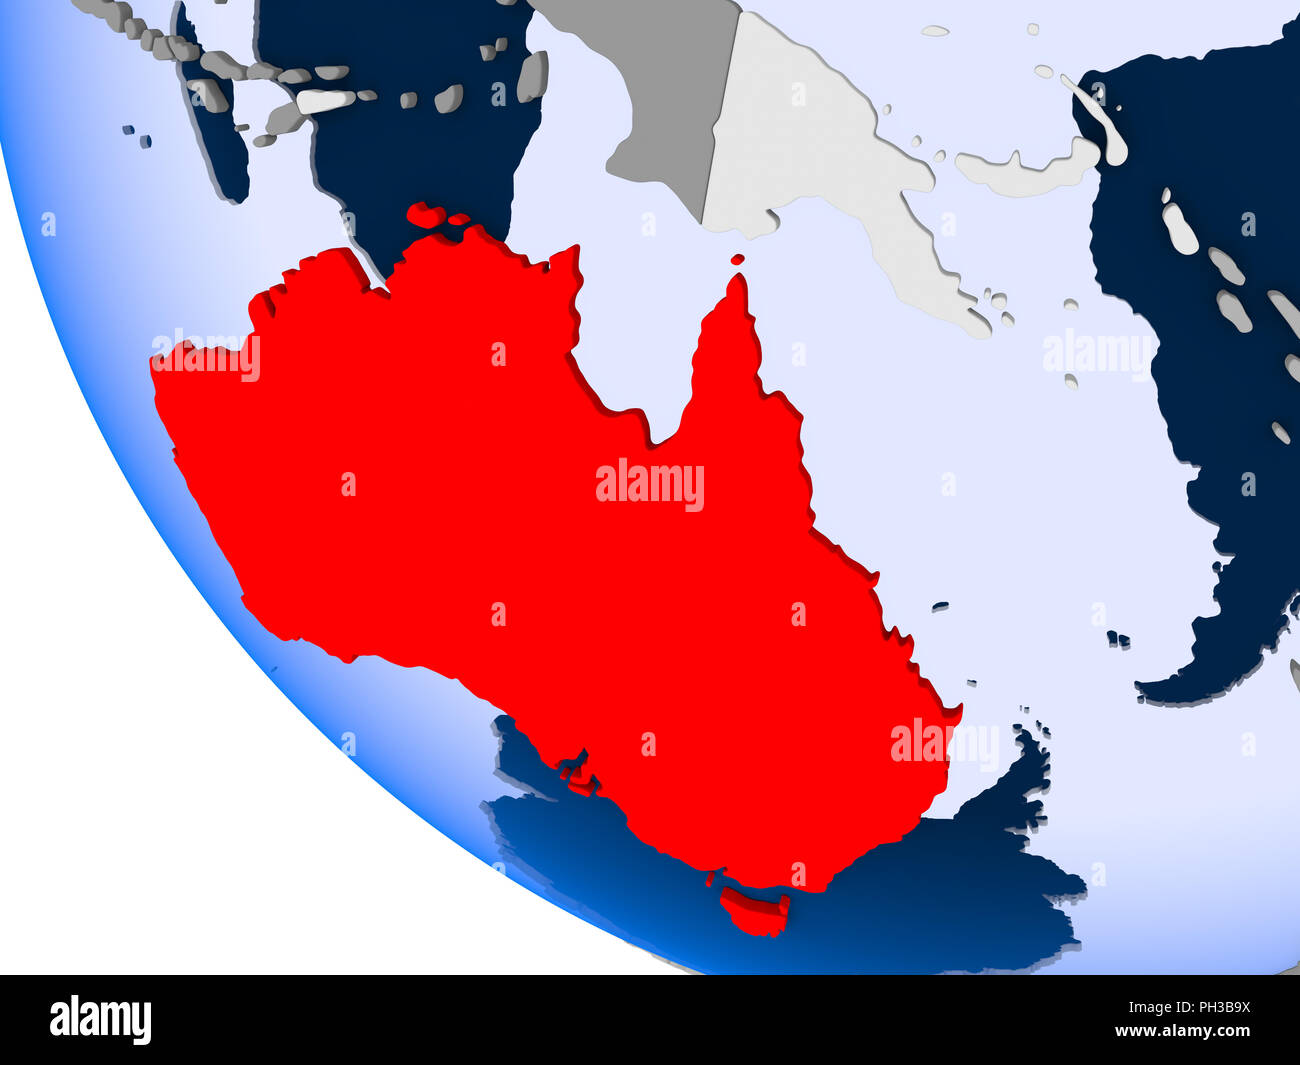 Australia Map Oceans.Map Of Australia In Red On Political Globe With Transparent Oceans